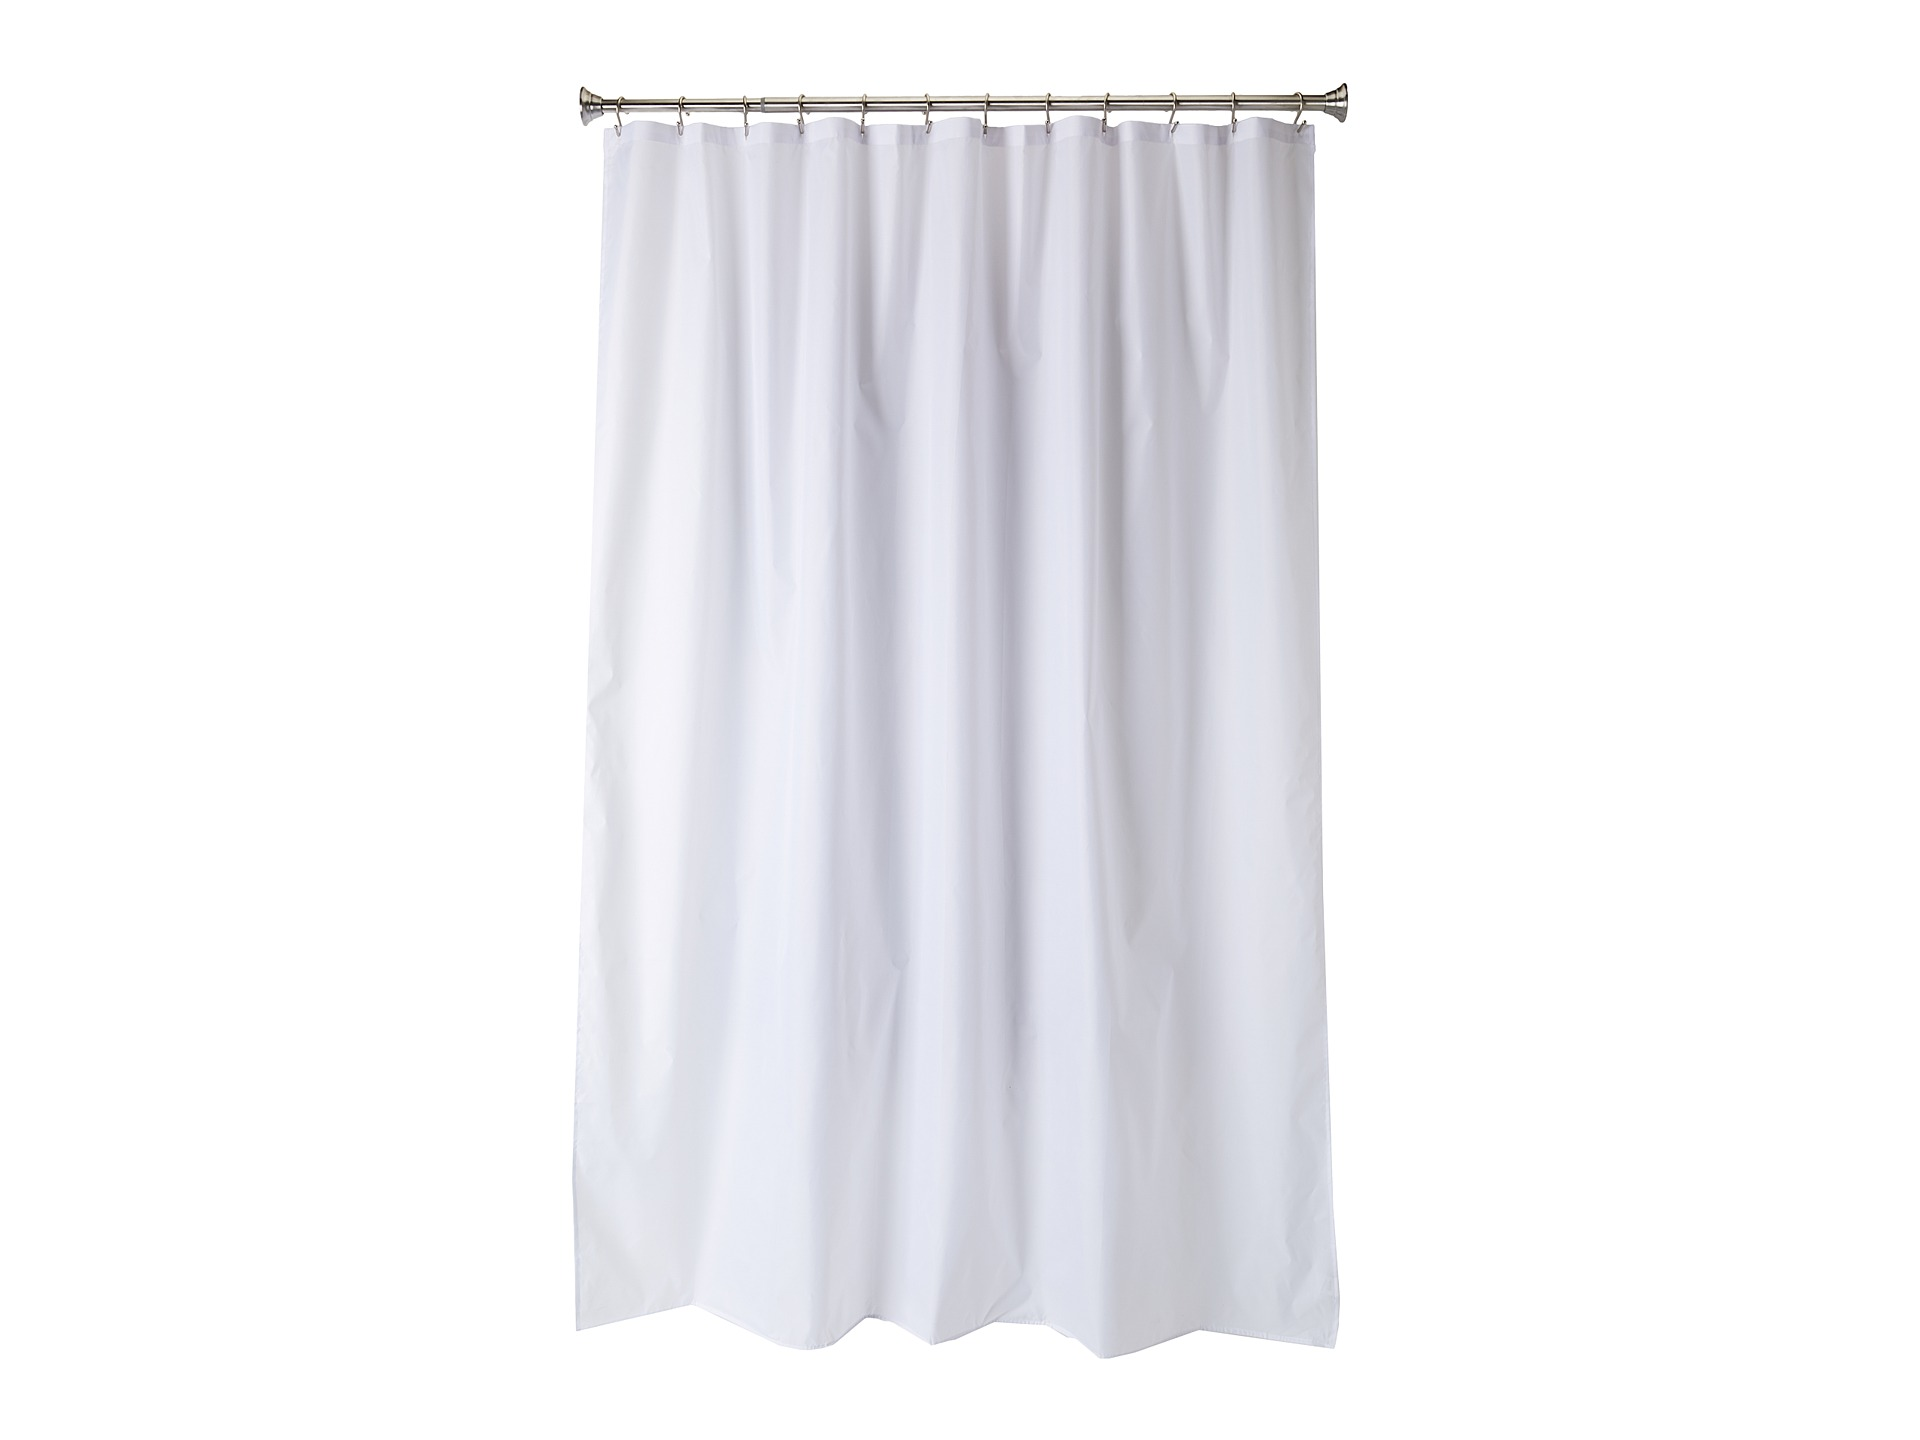 Interdesign Waterproof Fabric Long Shower Curtain Liner Shipped Free At Zappos